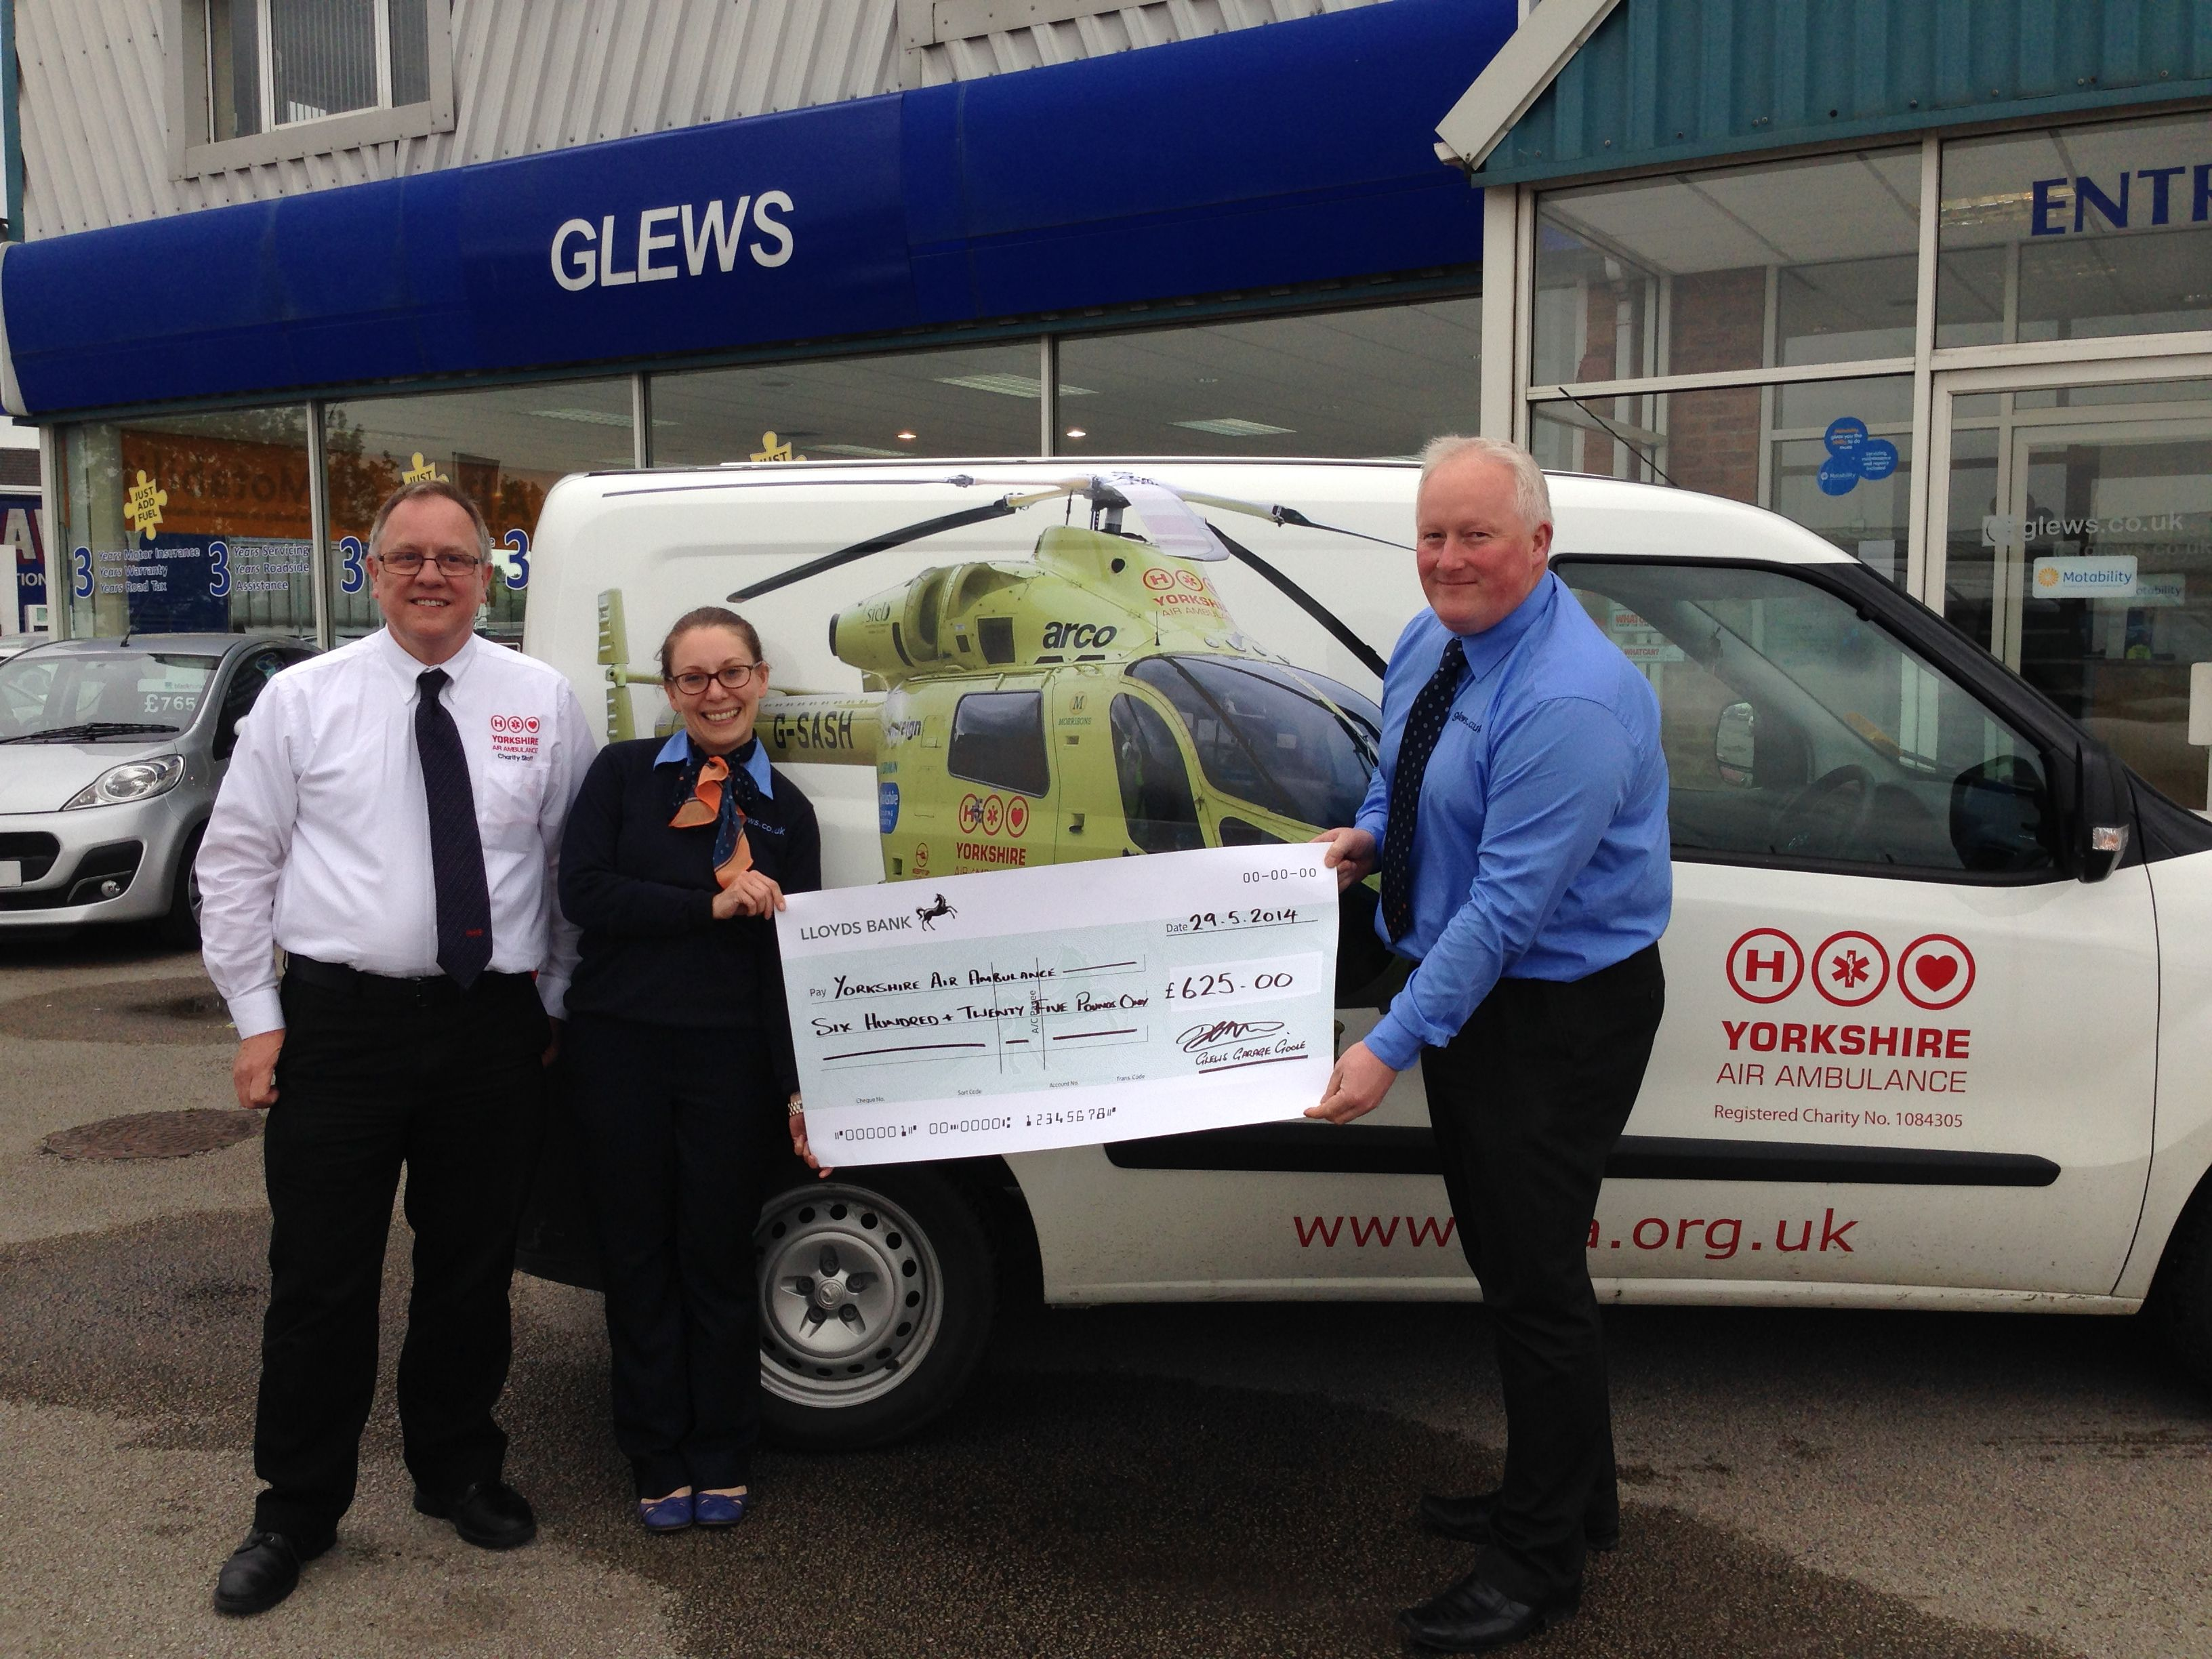 Glews deliver a Hole-in-One for Yorkshire Air Ambulance